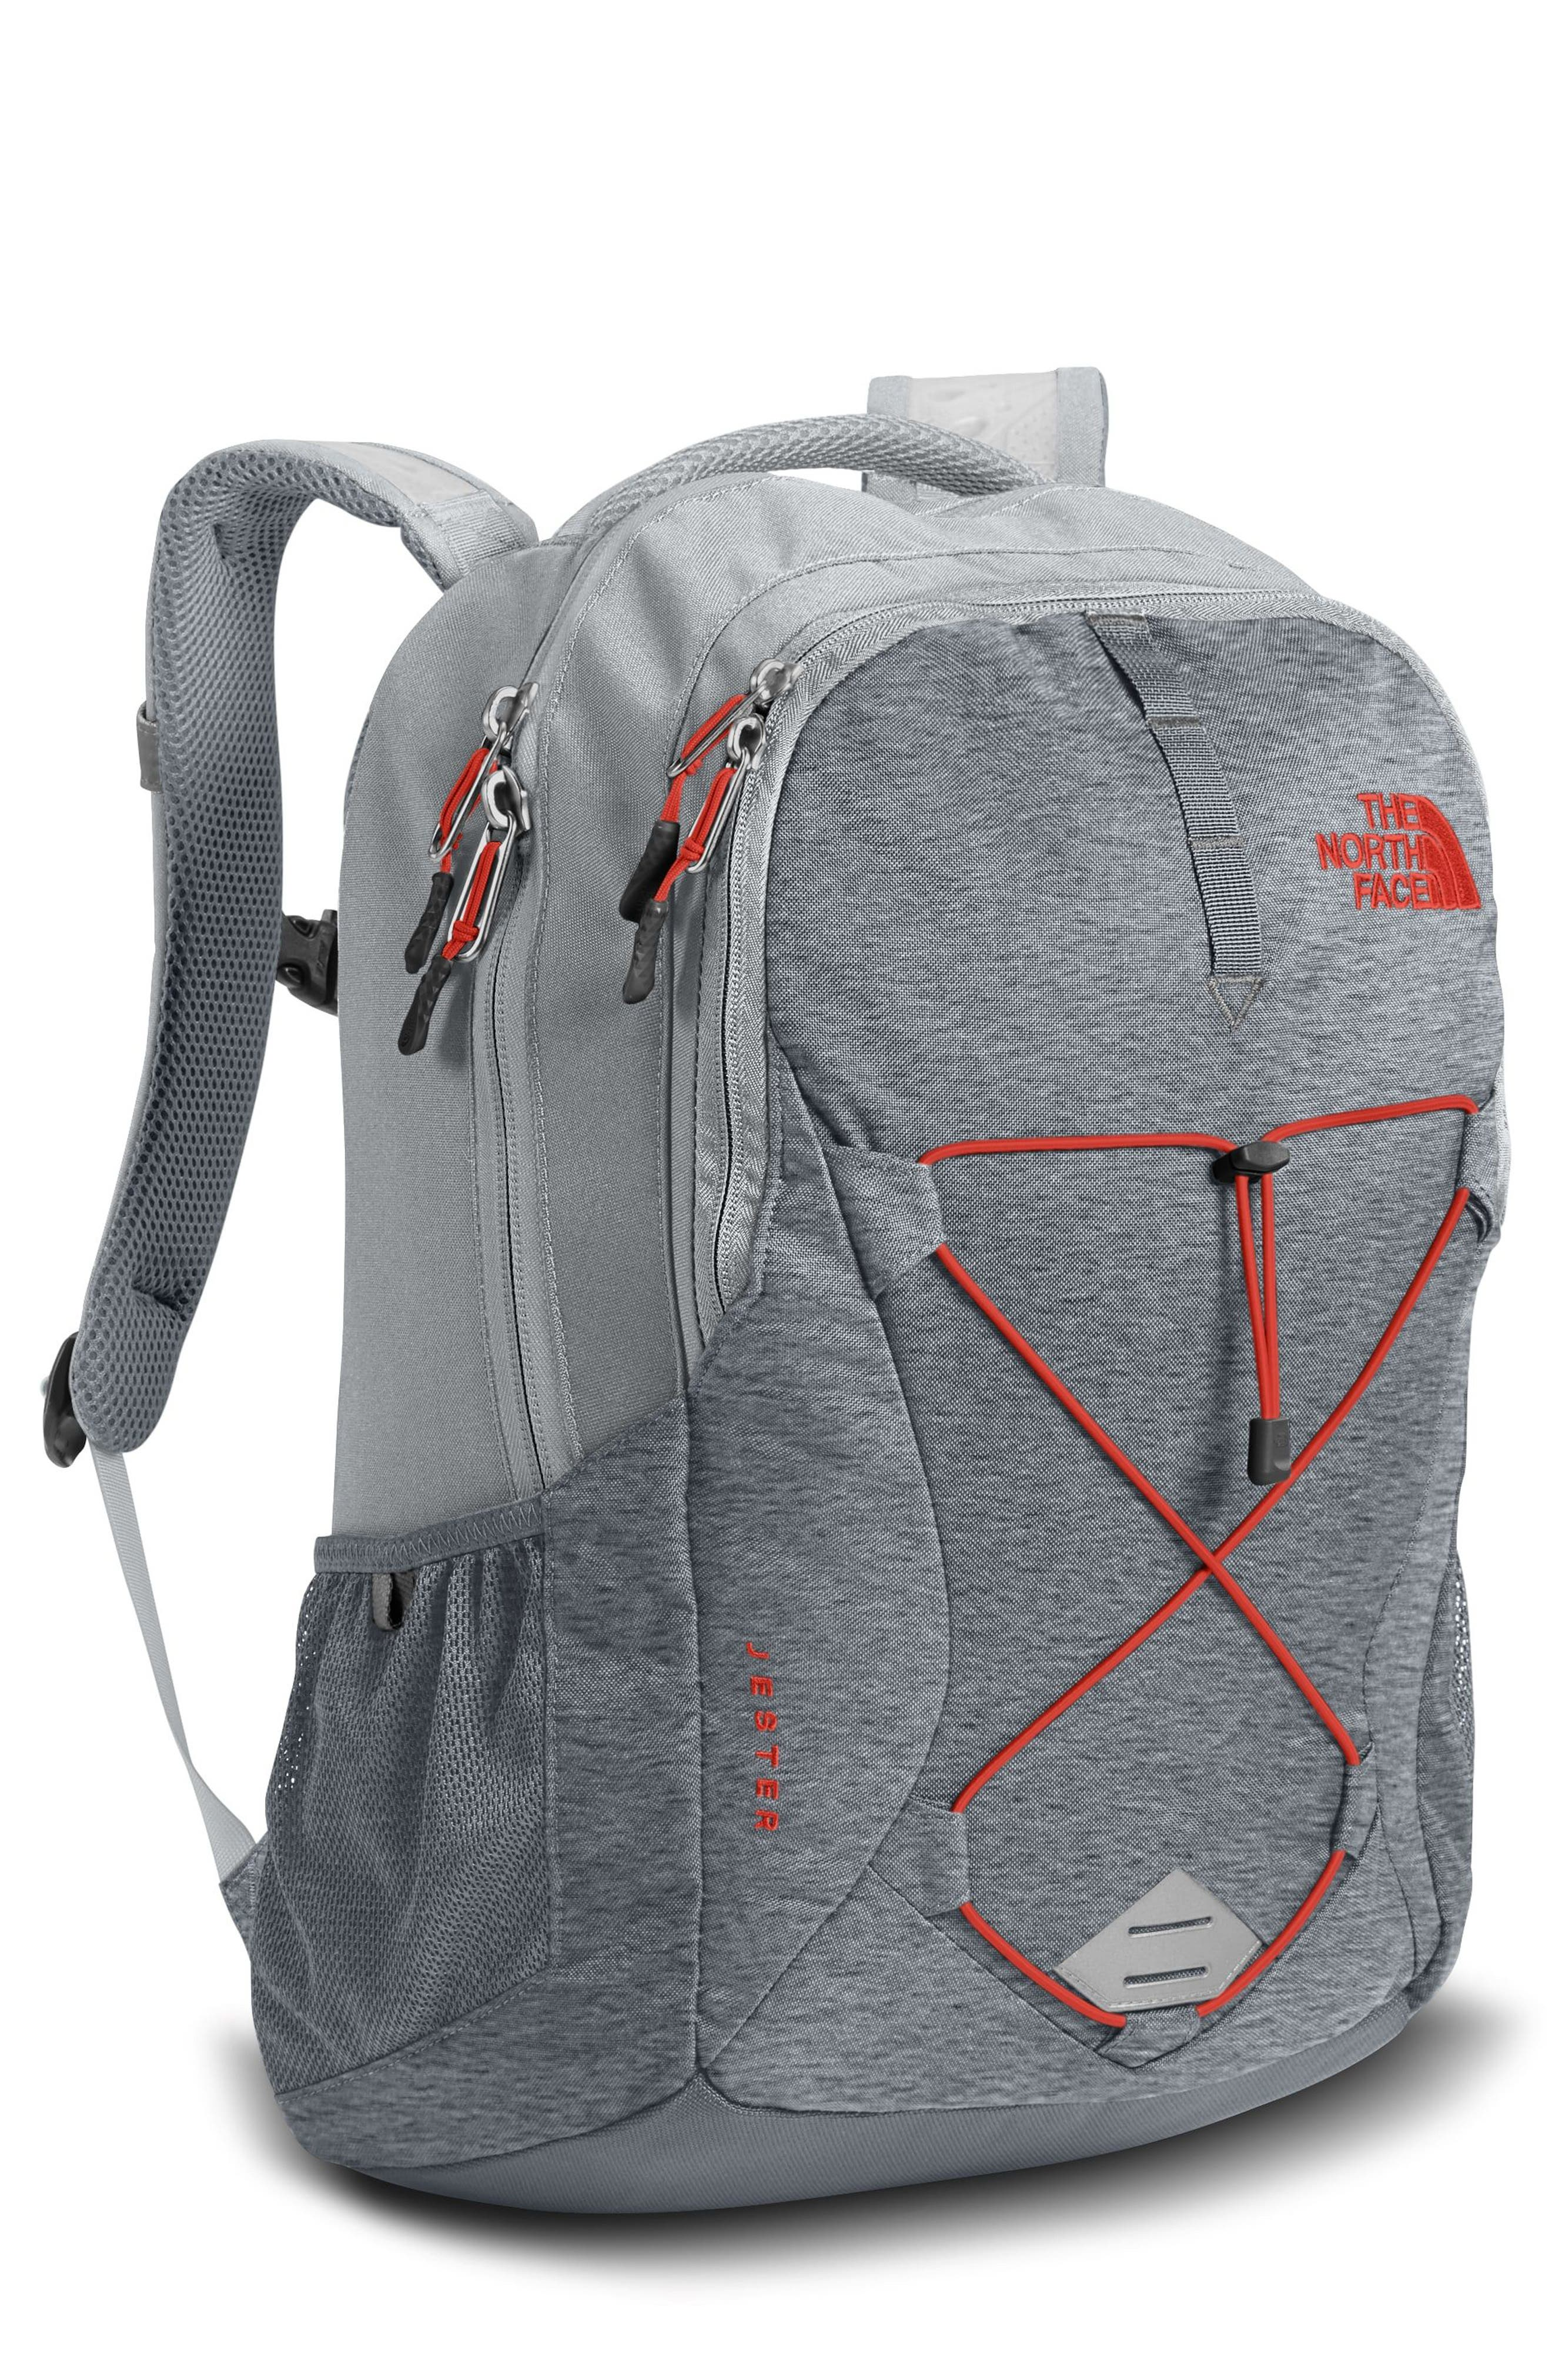 Jester Backpack,                         Main,                         color, 030